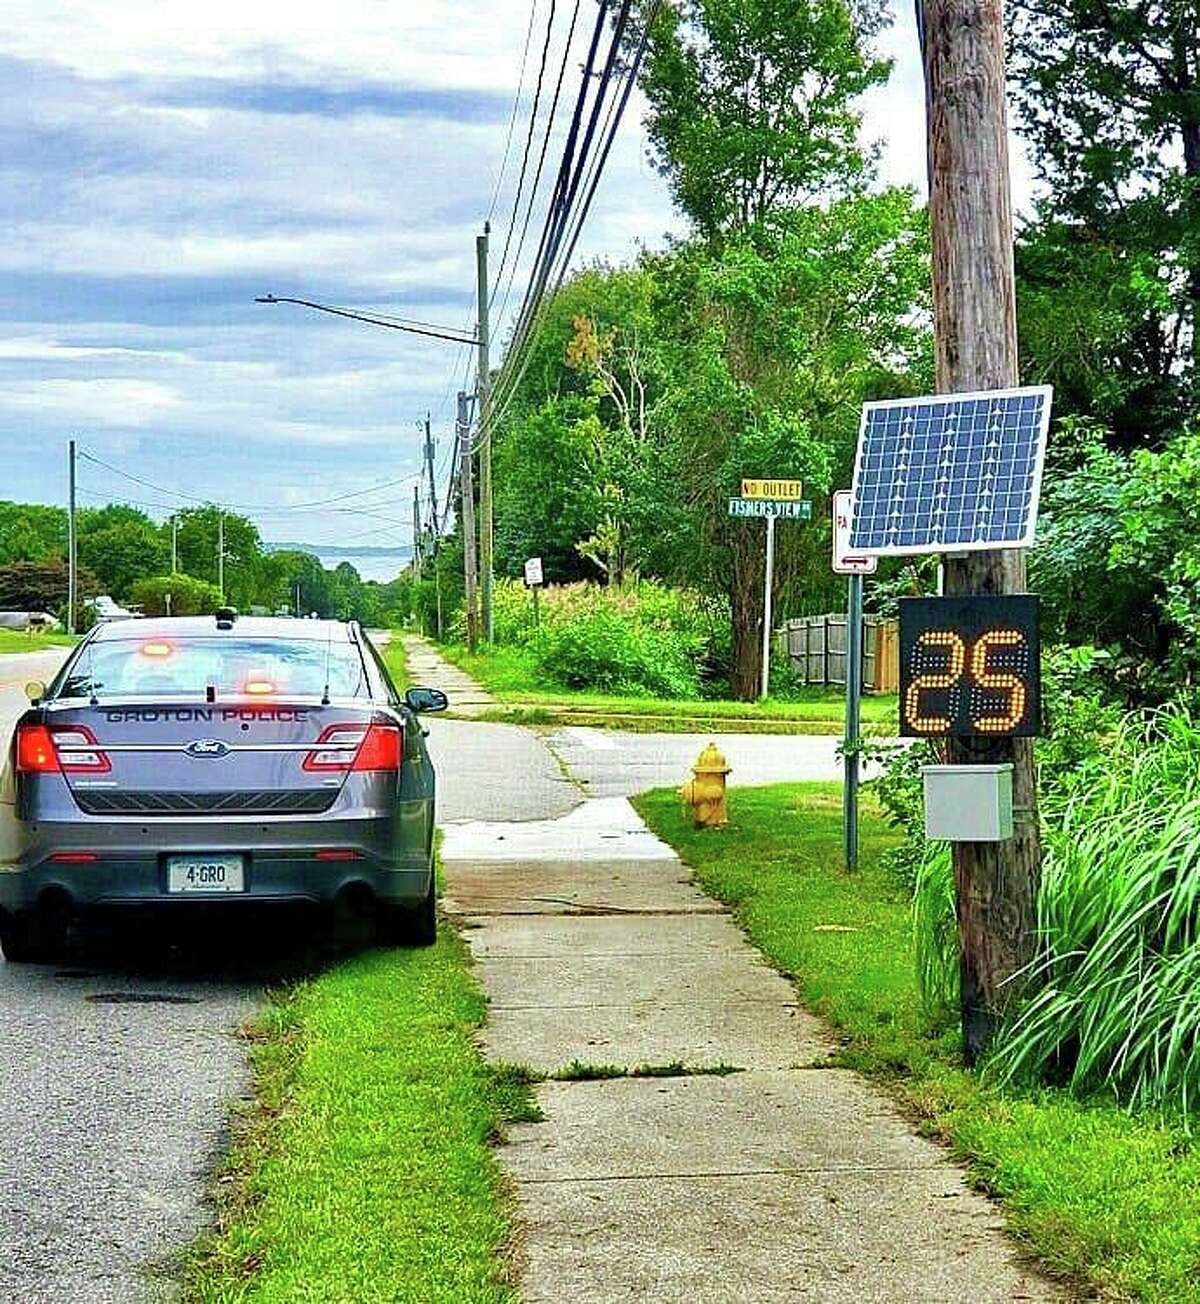 Groton police have deployed a new solar-powered traffic speed sign to help slow drivers. The unit is currently positioned on Groton Long Point Road, but it will be moving to different locations around town based on the results of our speed studies and citizen feedback.